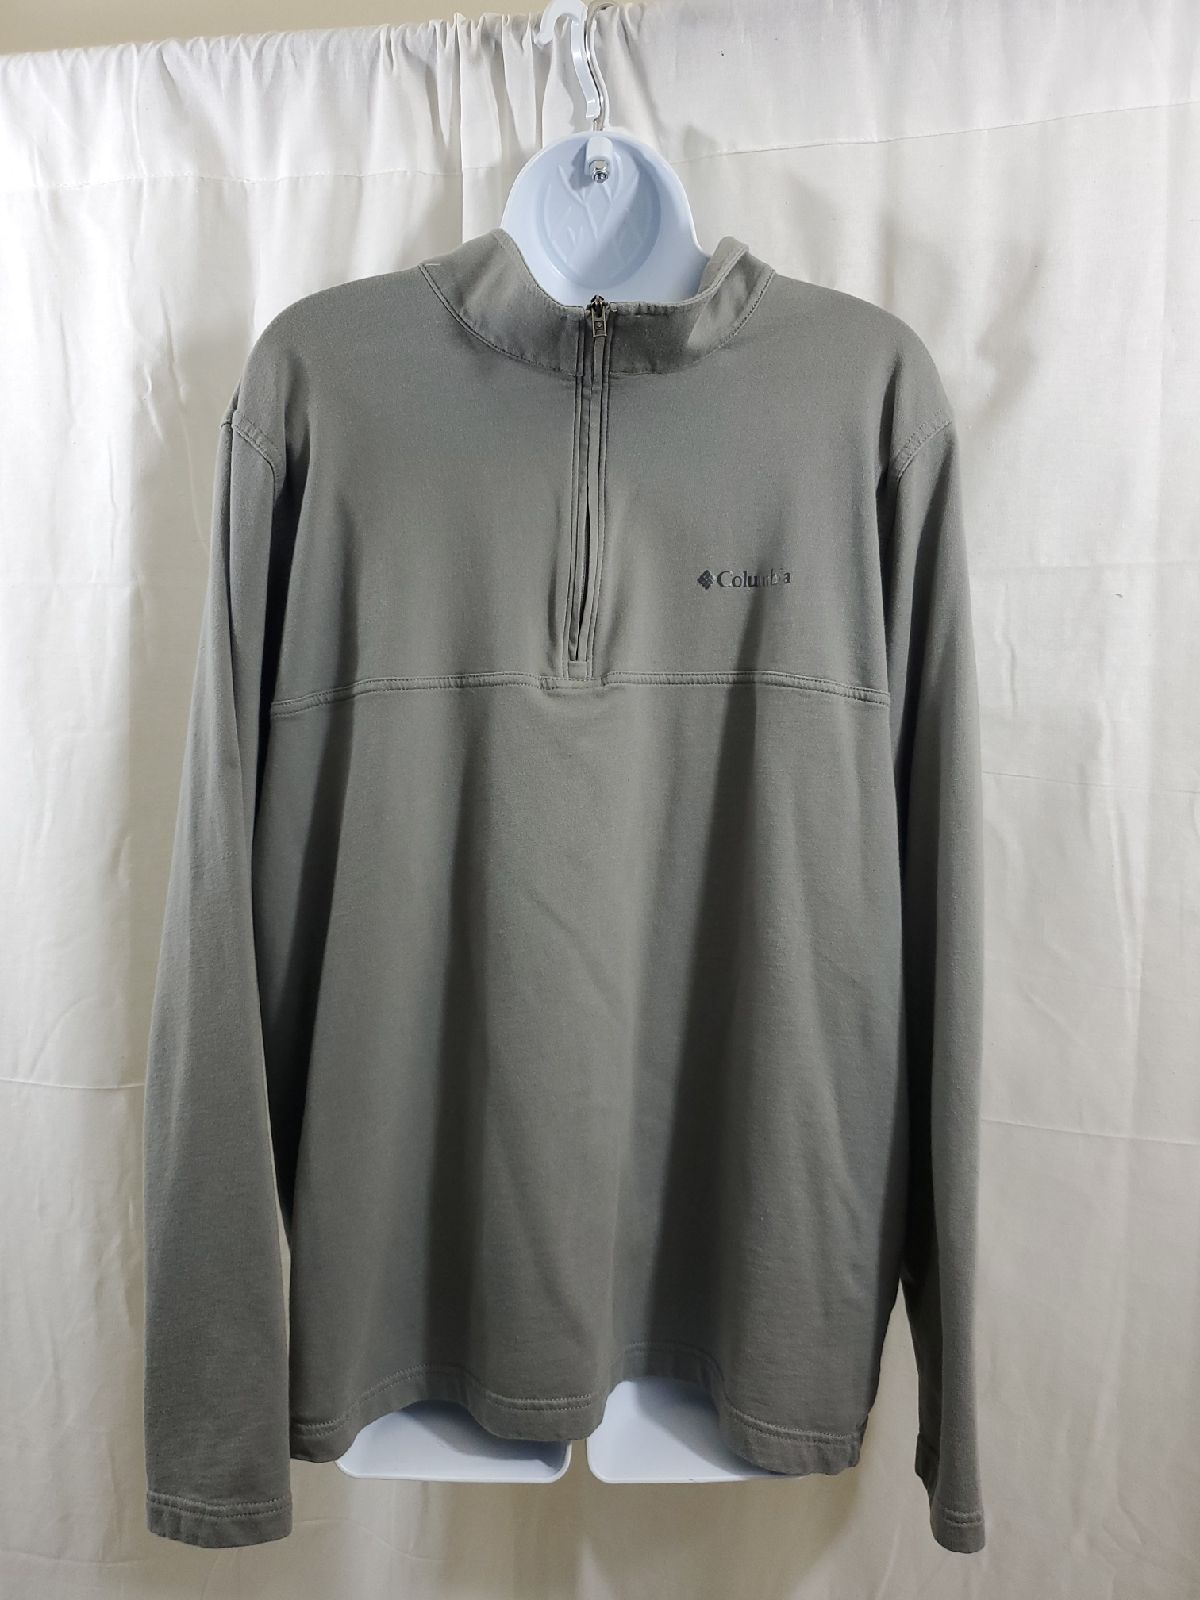 Columbia MEN'S half zip sweatshirt Sz XL